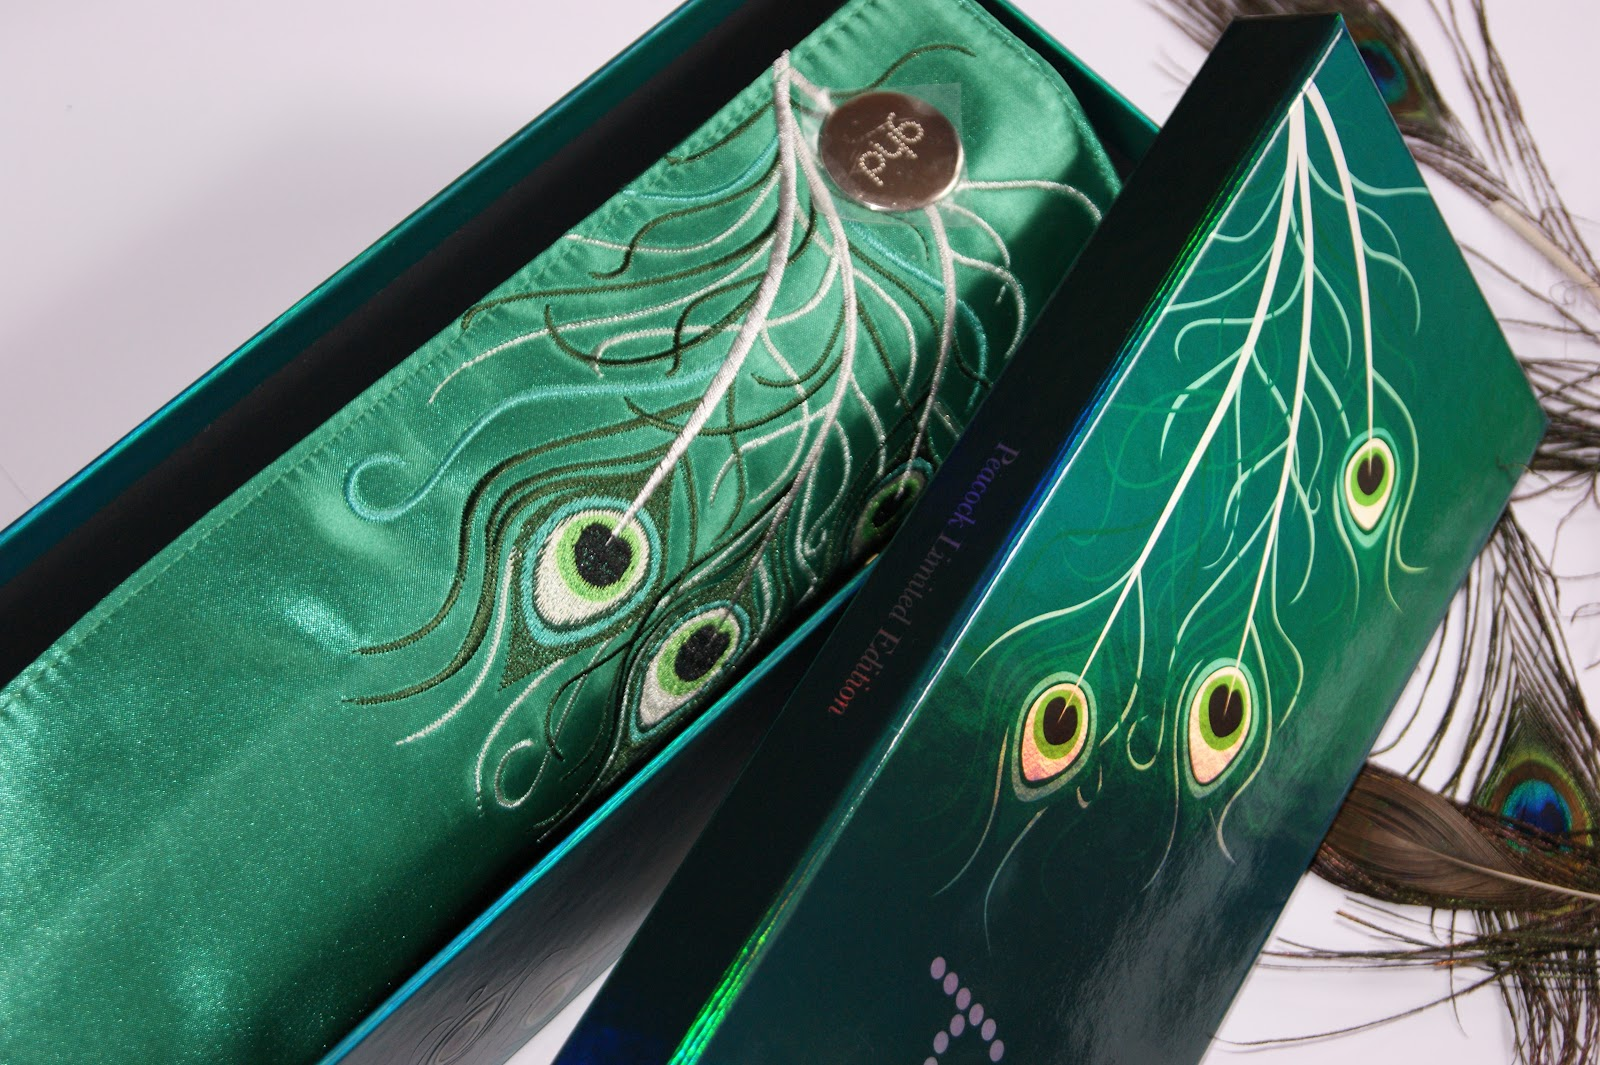 Ghd Limited Edition Peacock Styler Green Review The